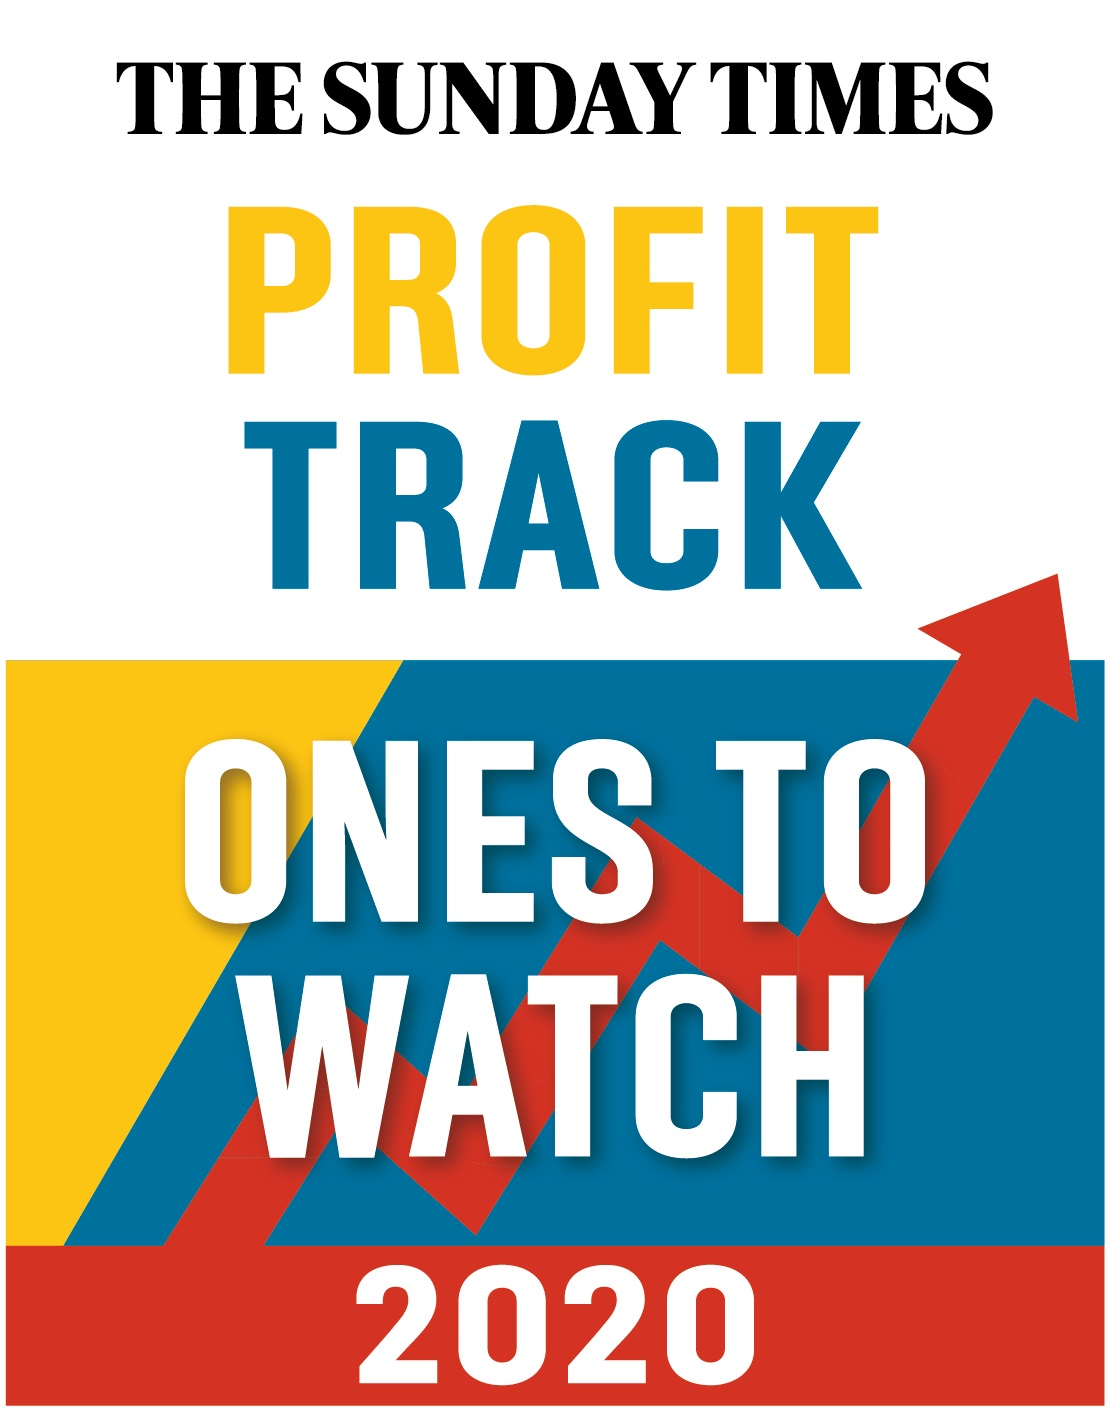 British fresh produce grower and supplier Jupiter Group listed on the Profit Track Ones to Watch for 2020